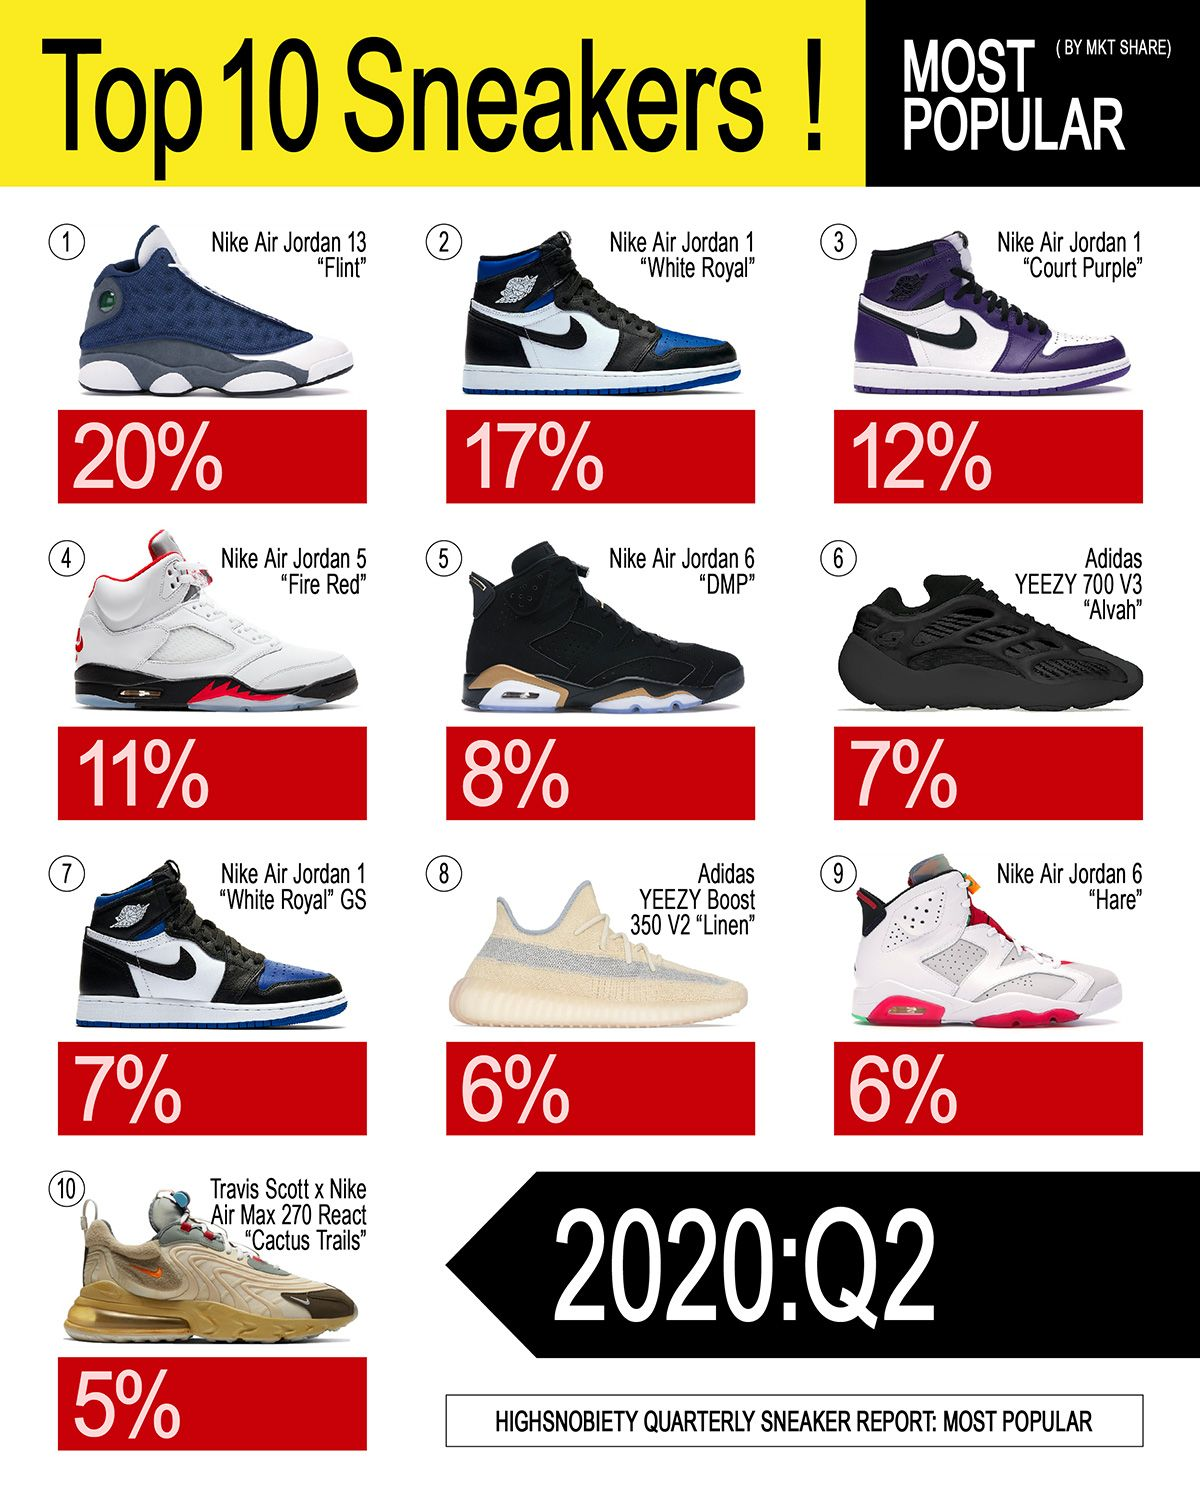 New Balance's Authenticity & Michael Jordan's Legend Defined Sneaker Storytelling This Quarter 31